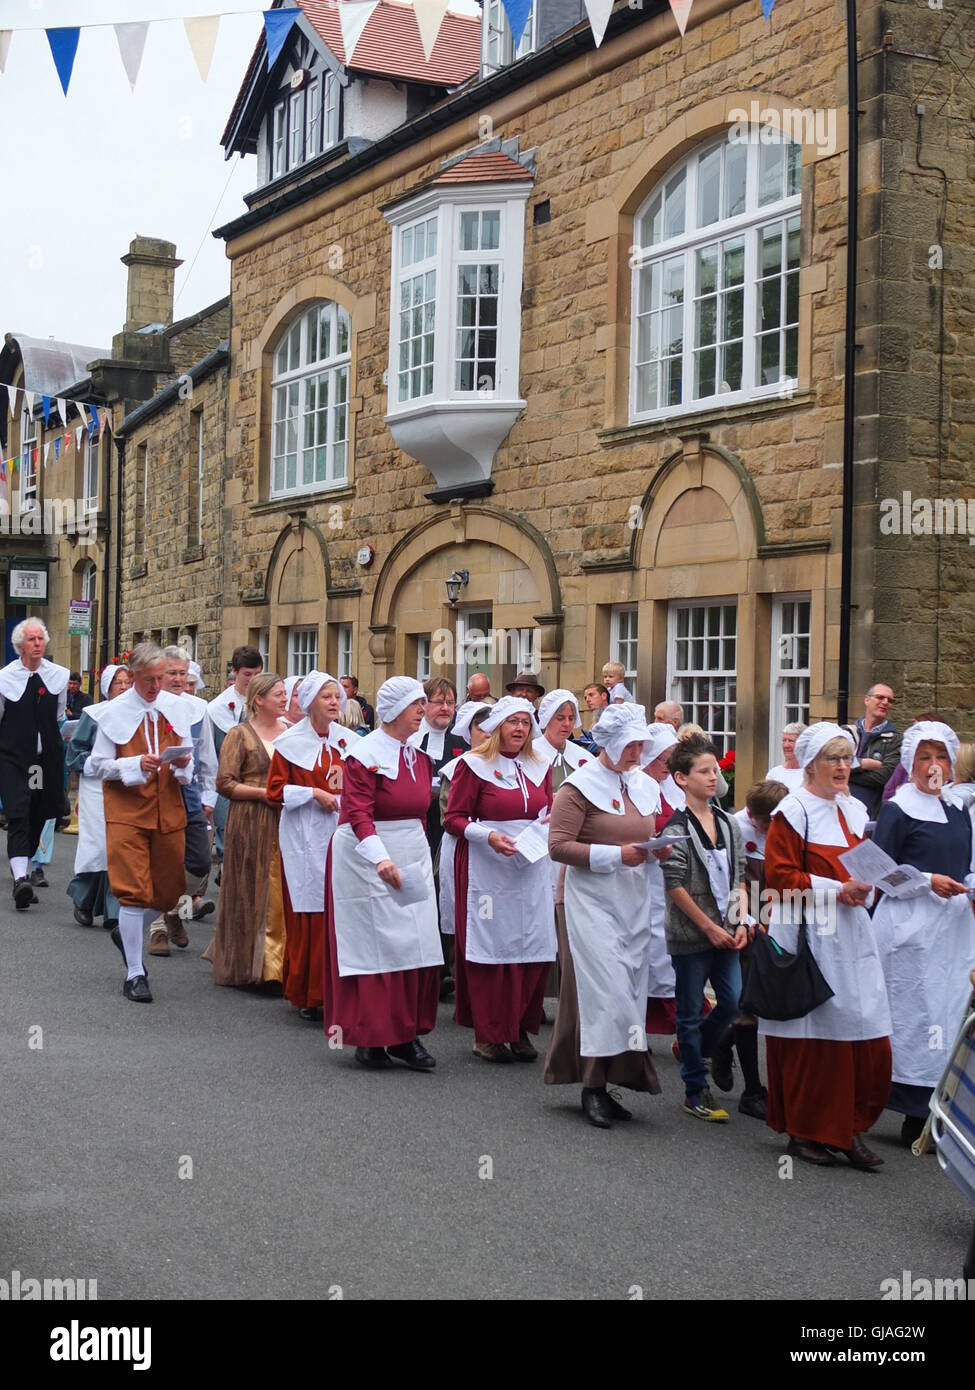 Villagers in costume process through the village of Eyam to Cucklet Delf during the annual Plague Commemoration - Stock Image